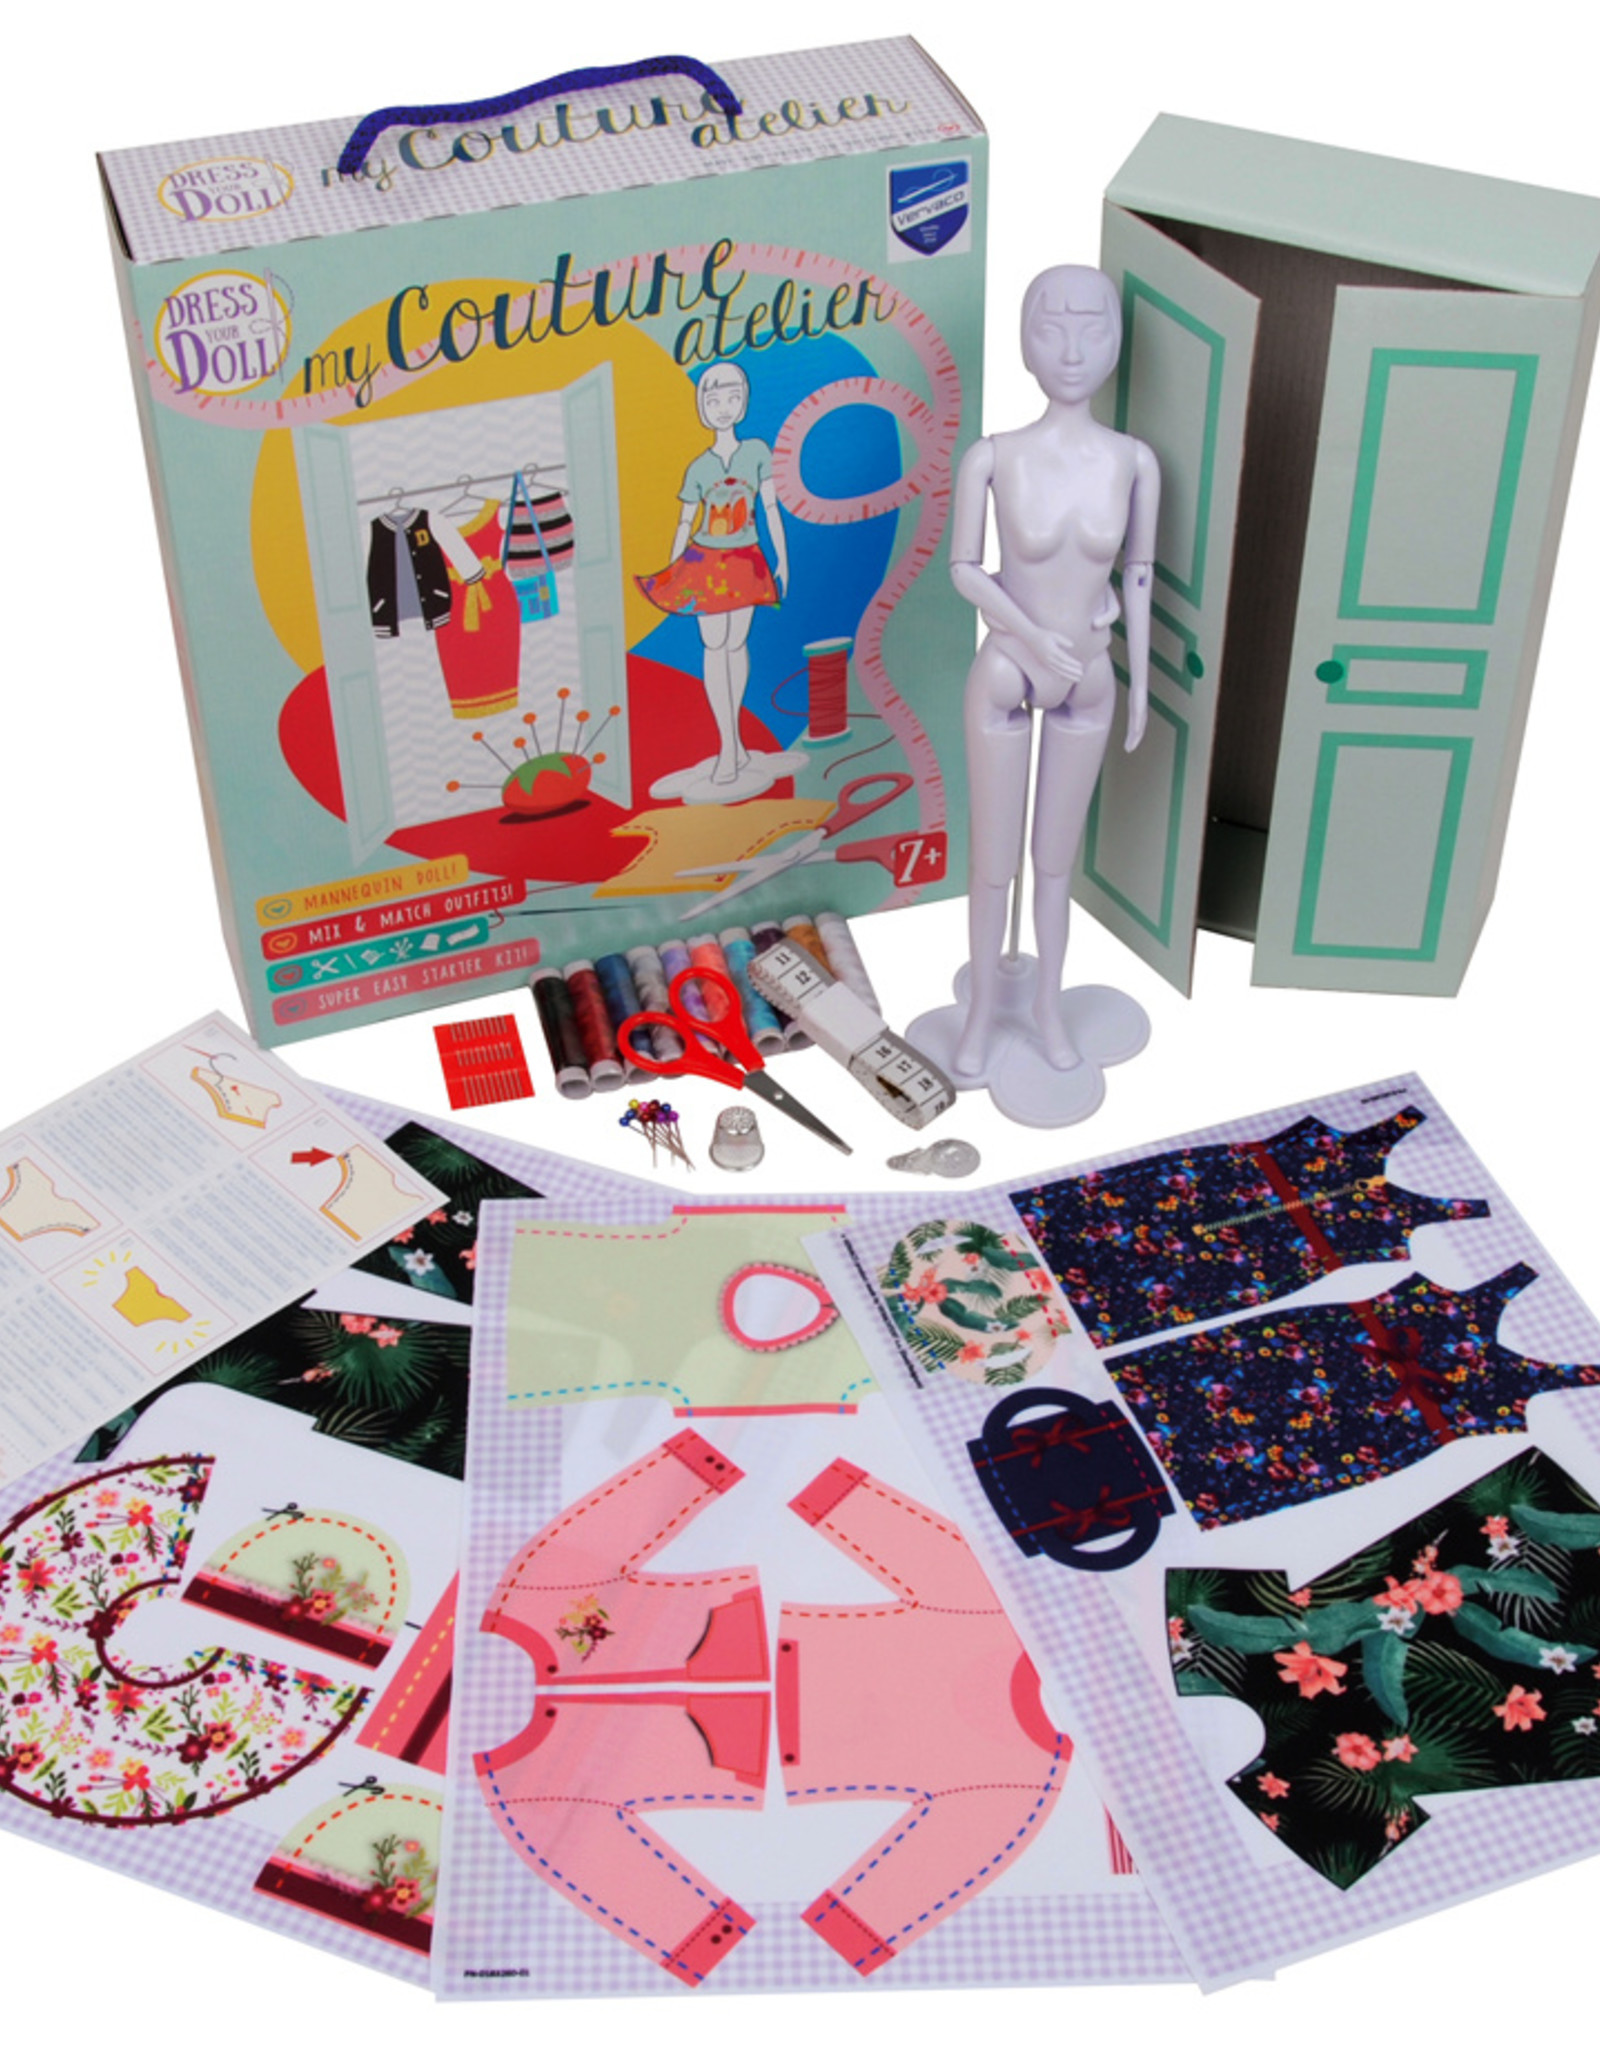 My Couture Atelier - Dress Your Doll